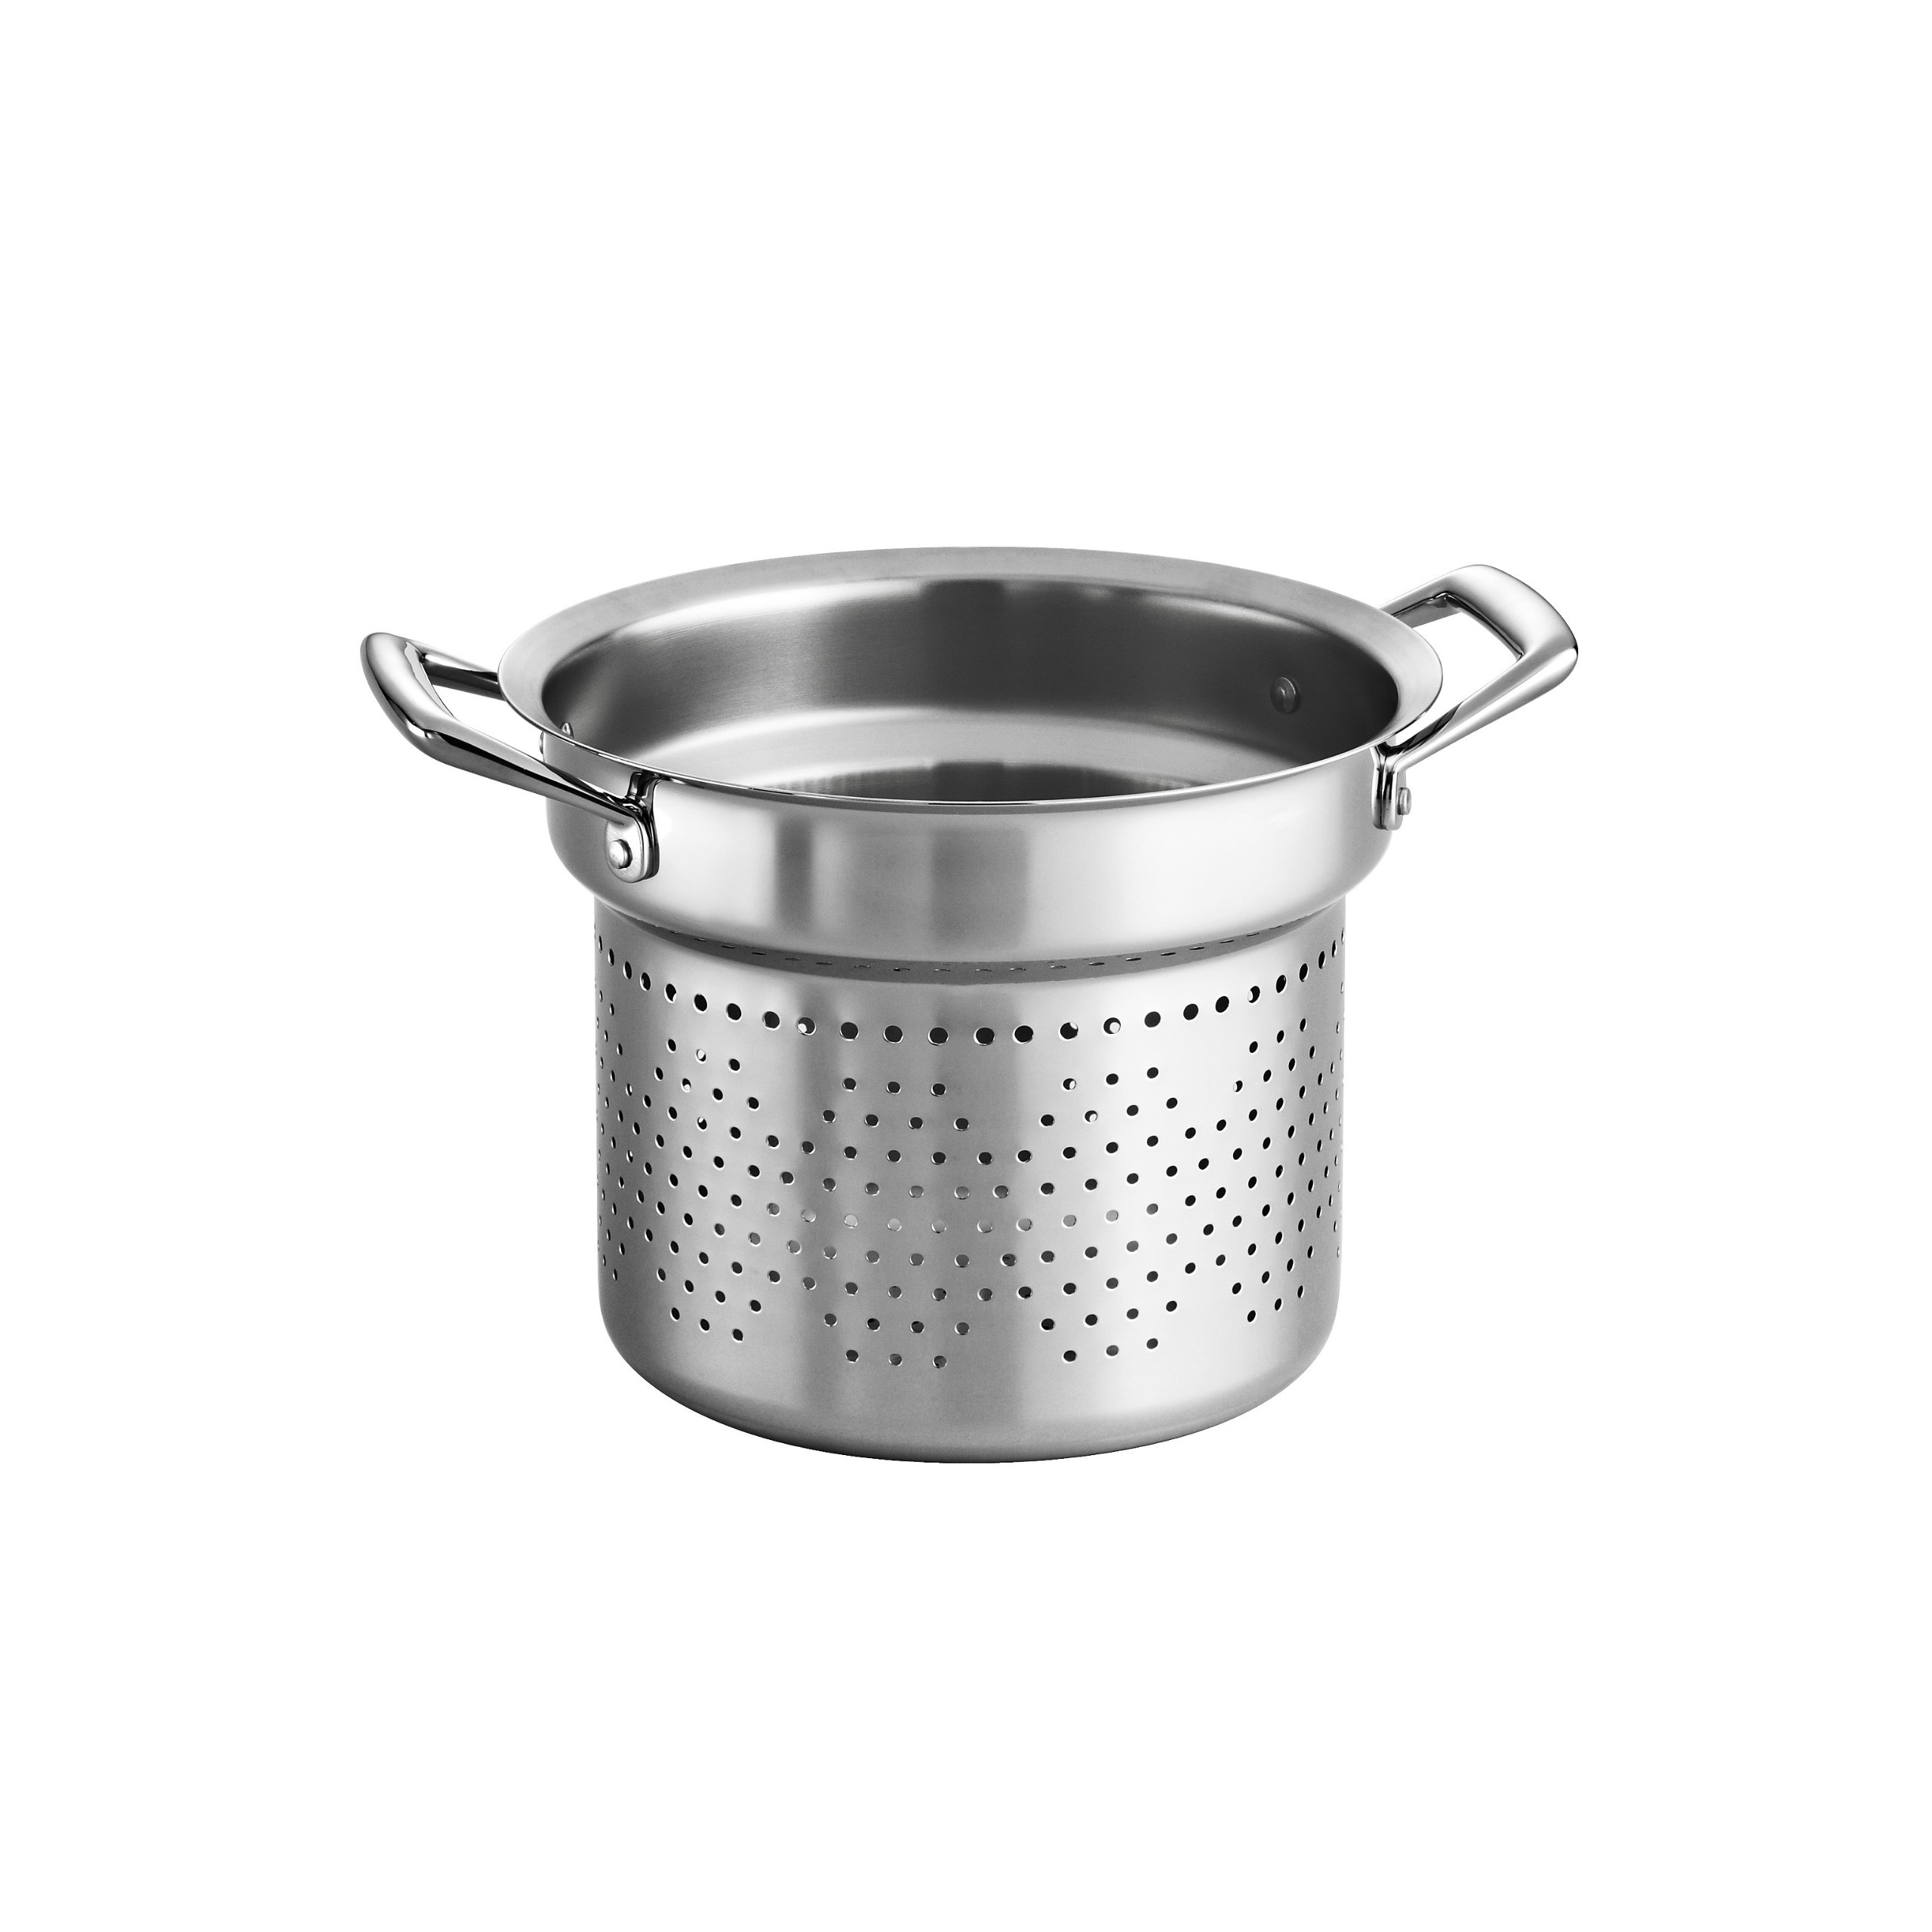 Tramontina 80101/015DS Gourmet Prima Stainless Steel Pasta Insert, 8 Quart, Made in Brazil